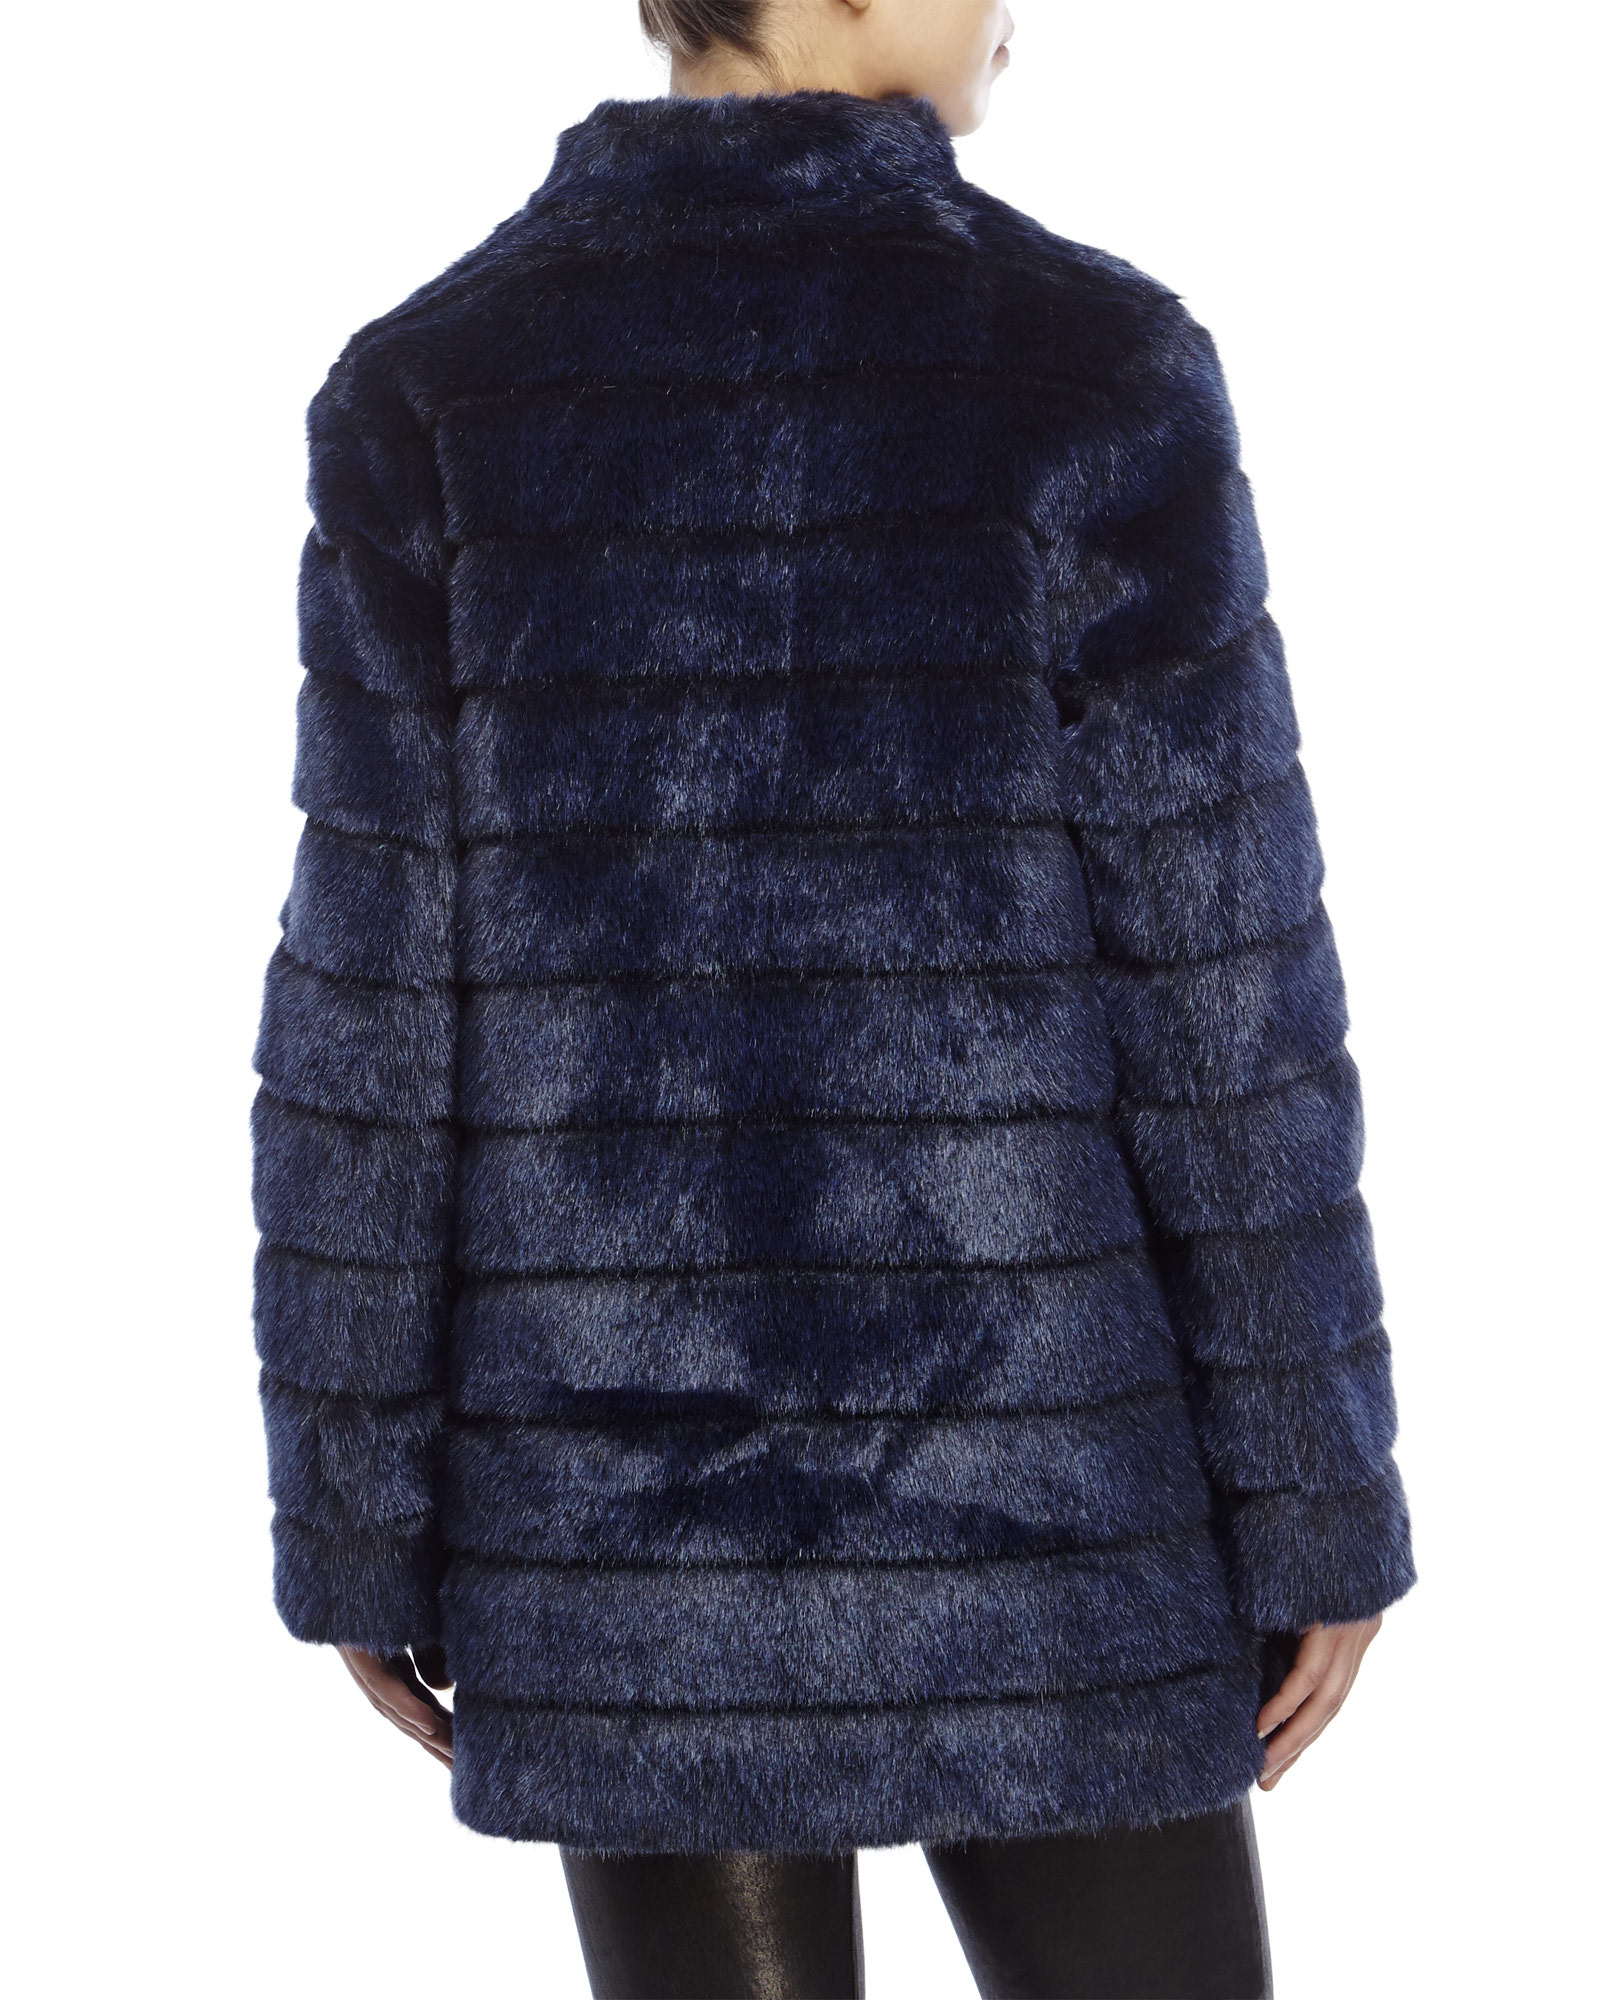 Laundry by shelli segal Navy Paneled Faux Fur Coat in Blue | Lyst